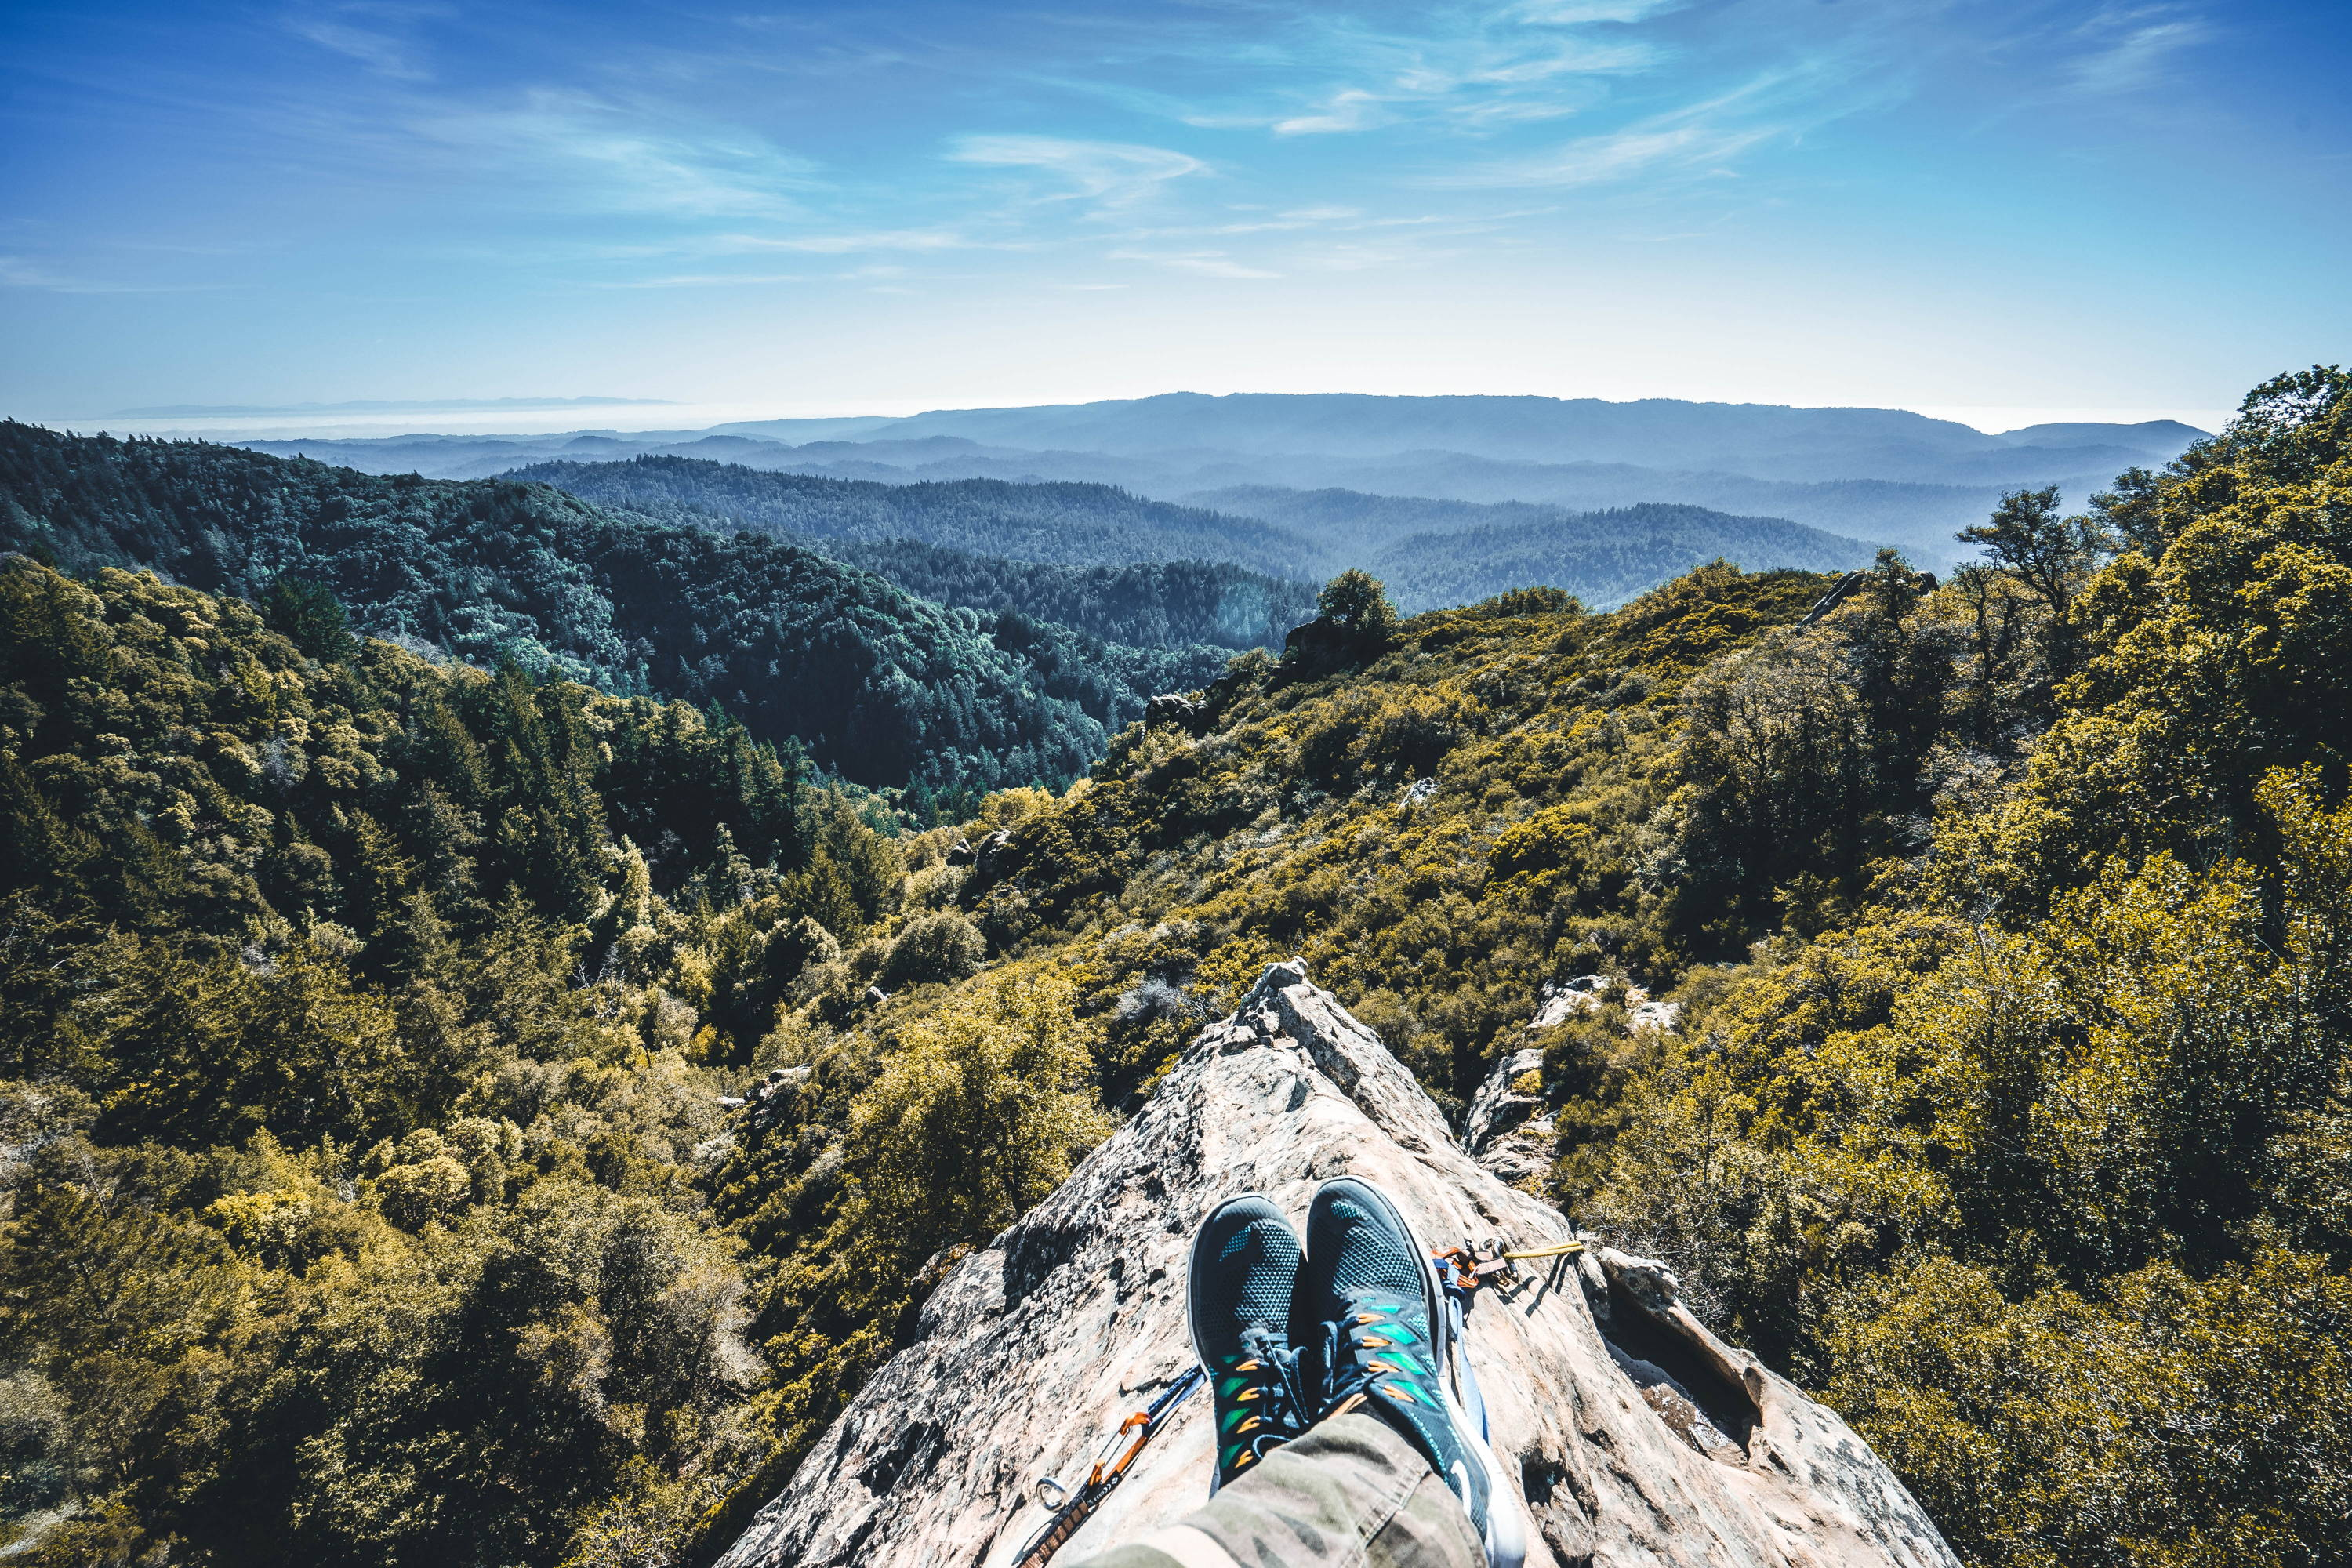 17 Best Backpacking Hacks for 2019 & Beyond. Man sits on rock with only shoes visible, overlooking lush, green valley below.